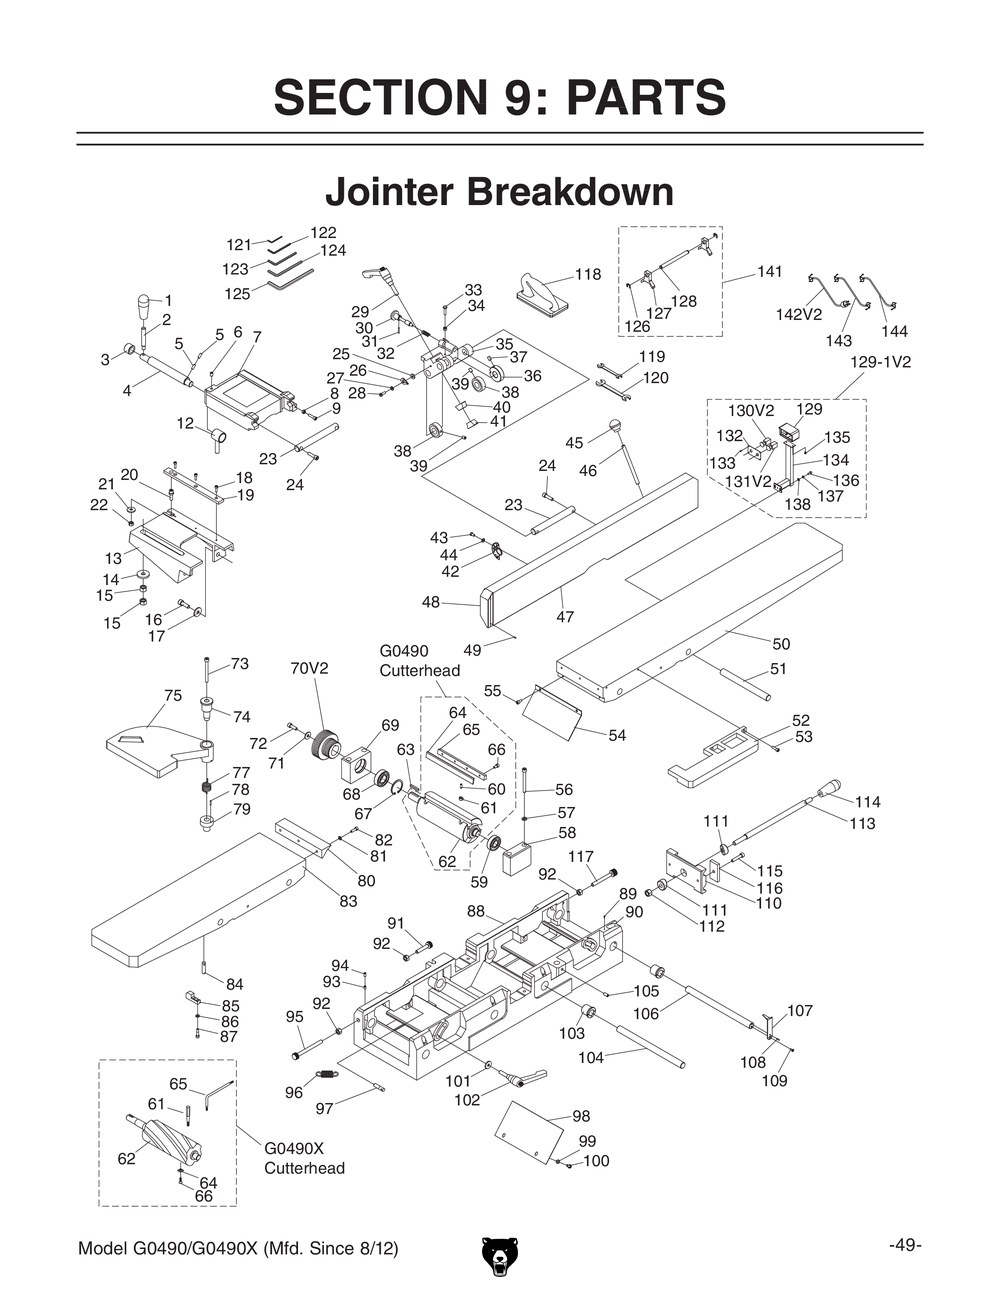 wiring diagram delta jointer - wiring diagram delta jointer wiring diagram #2